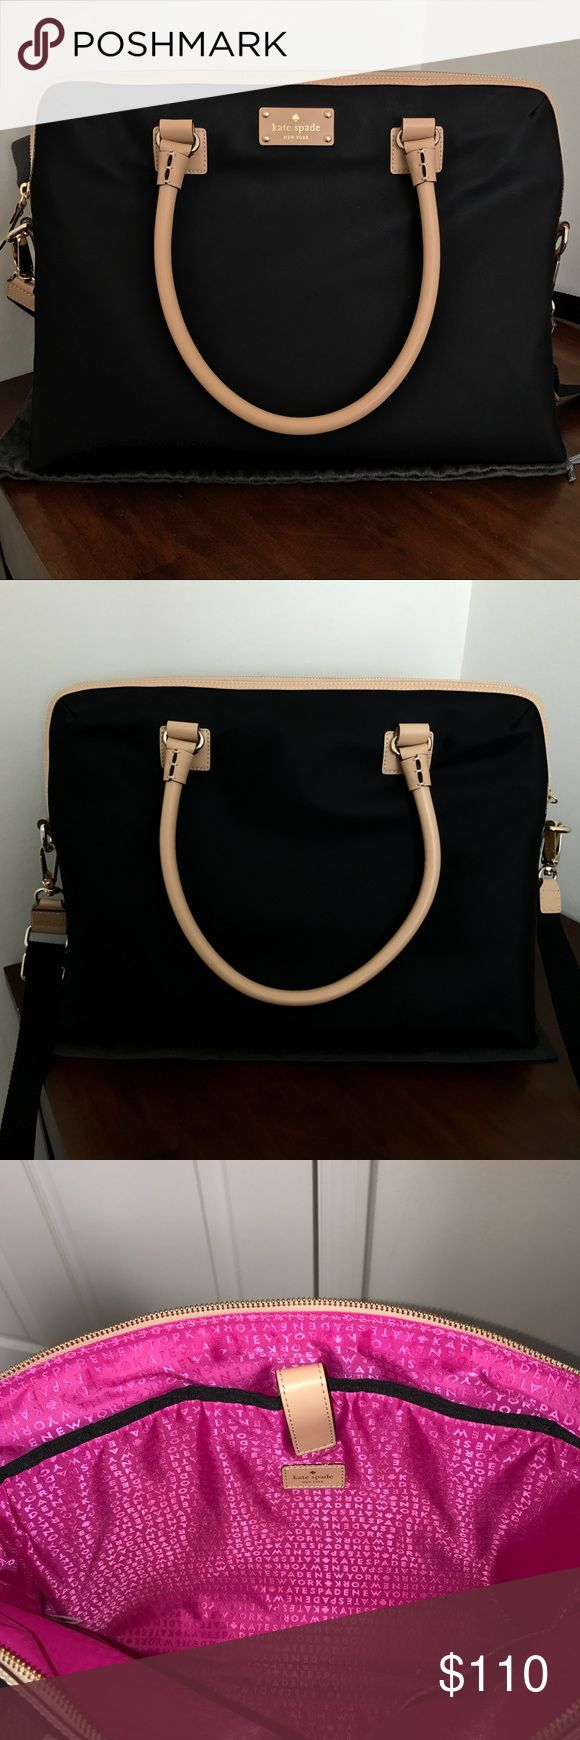 Kate Spate Commuter Bag NWOT FEATURES: -Black nylon exterior  -Nude leather trim and handles -Gold plated hardware -Detachable shoulder strap included  DETAILS: -BRAND NEW, never used -No wear or imperfections  -Smoke and pet free home kate spade Bags